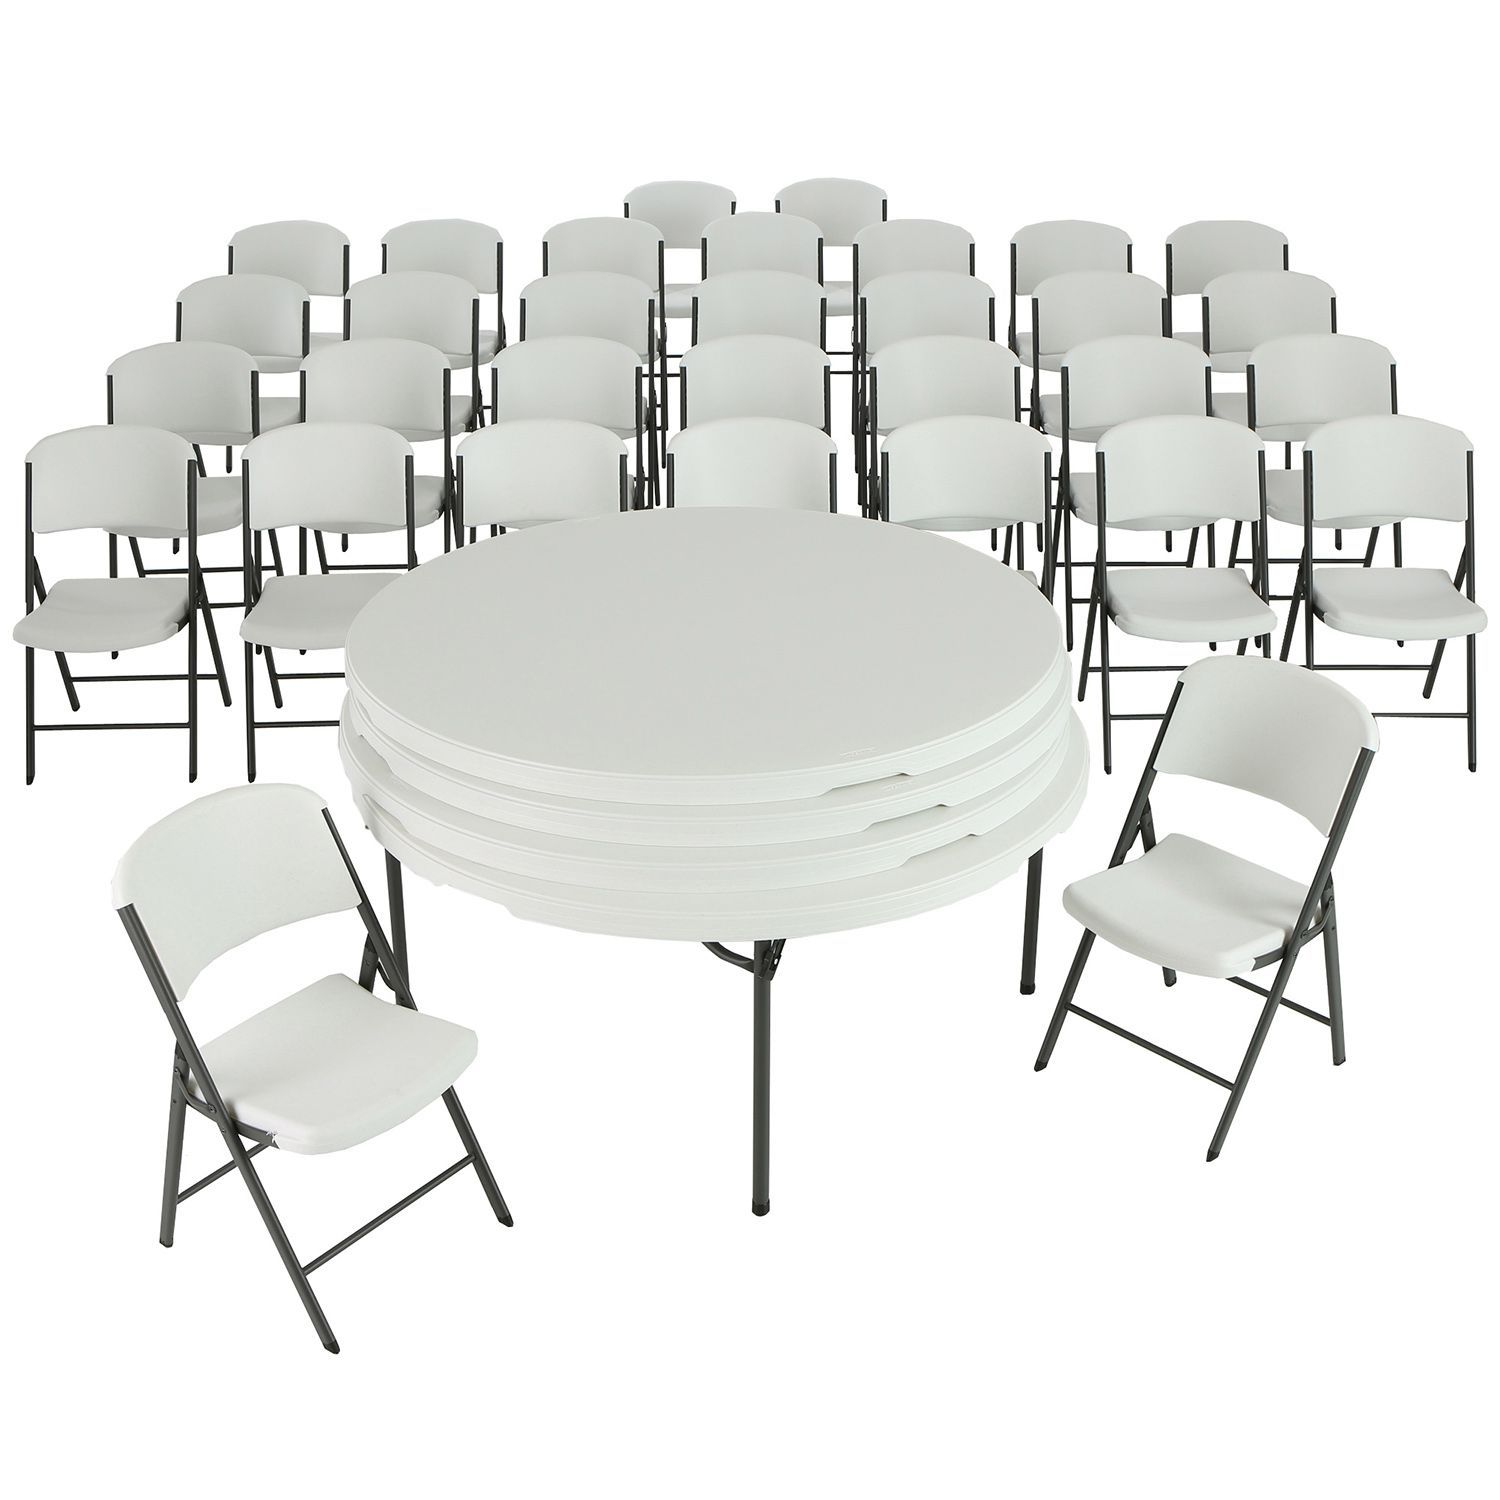 Lifetime Combo 4 60 Round Commercial Grade Folding Tables And